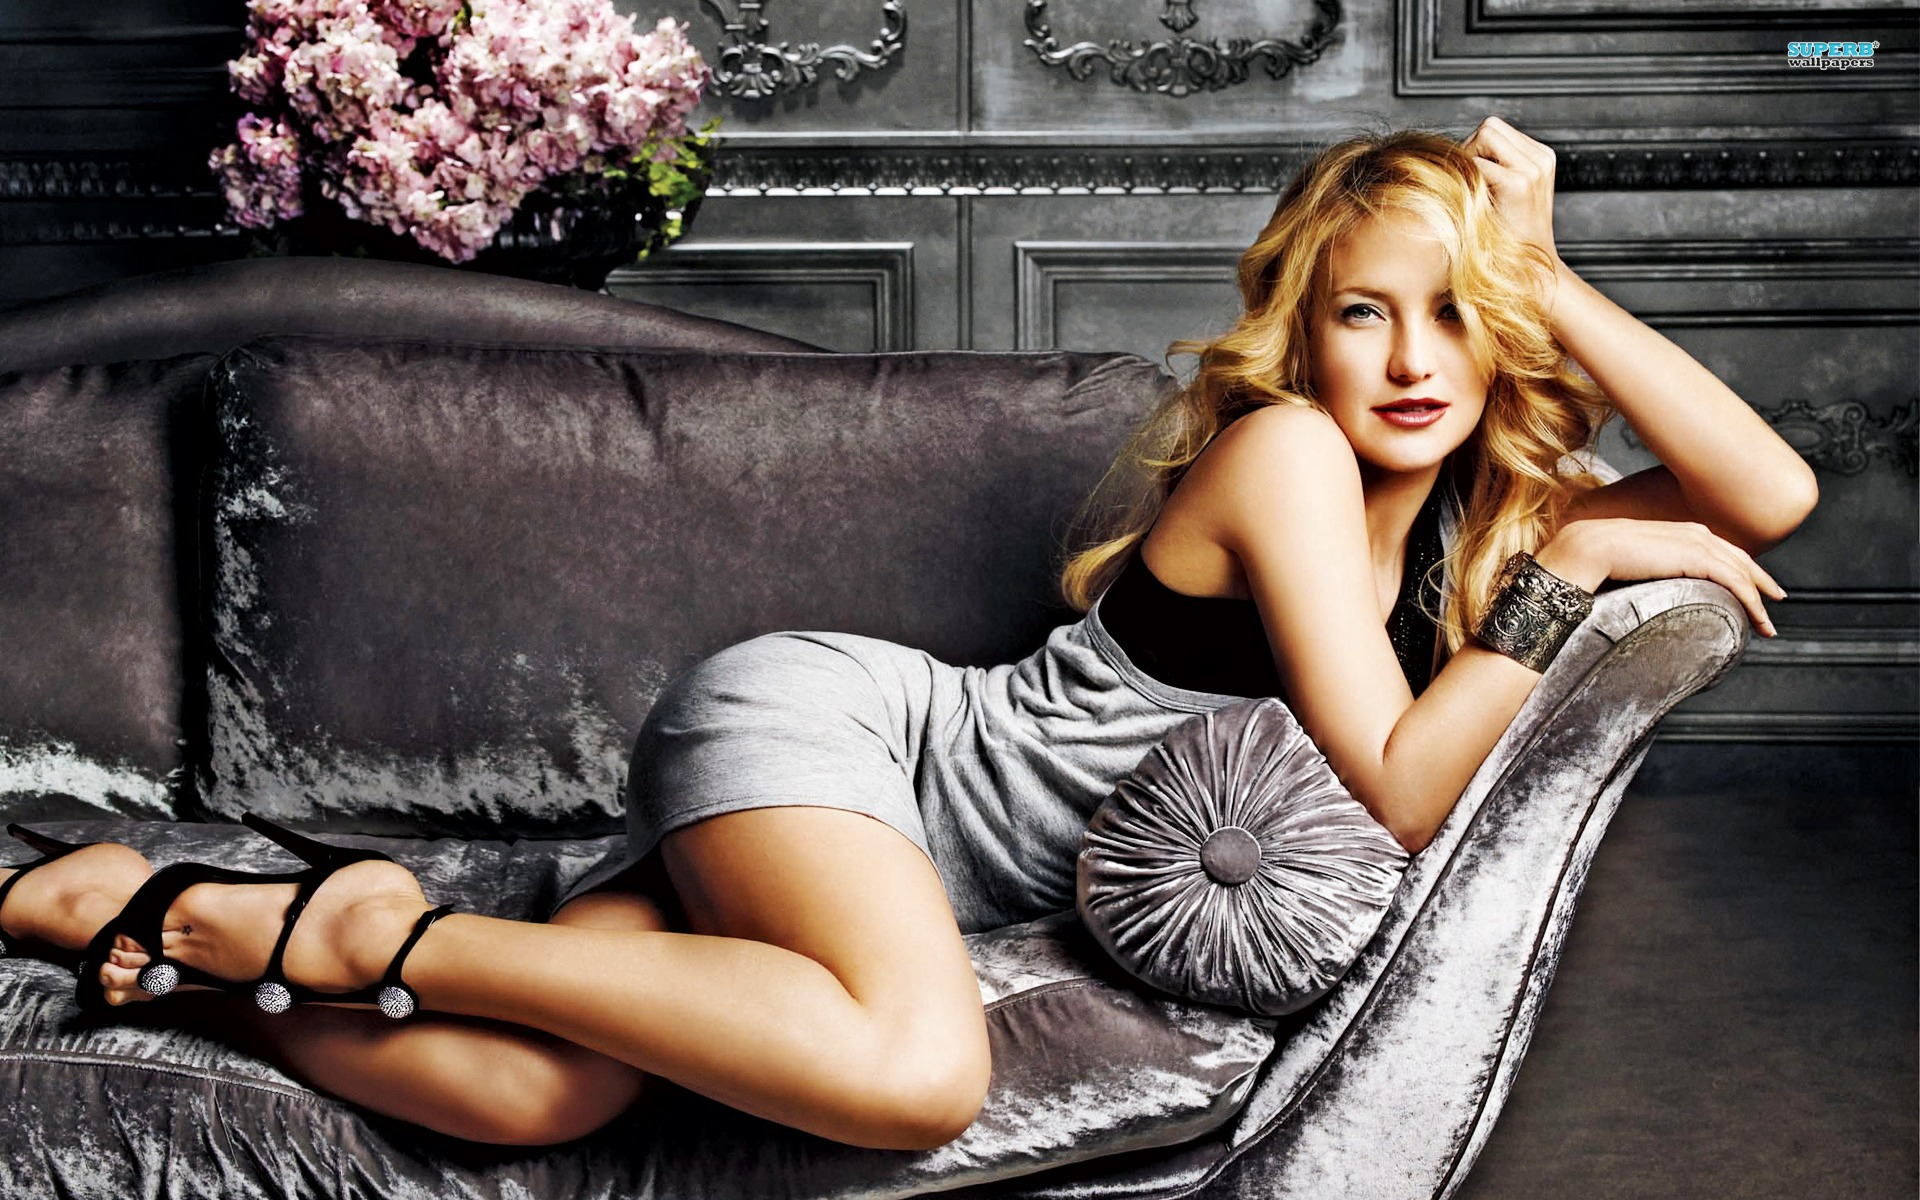 Celebrity photos in high resolution